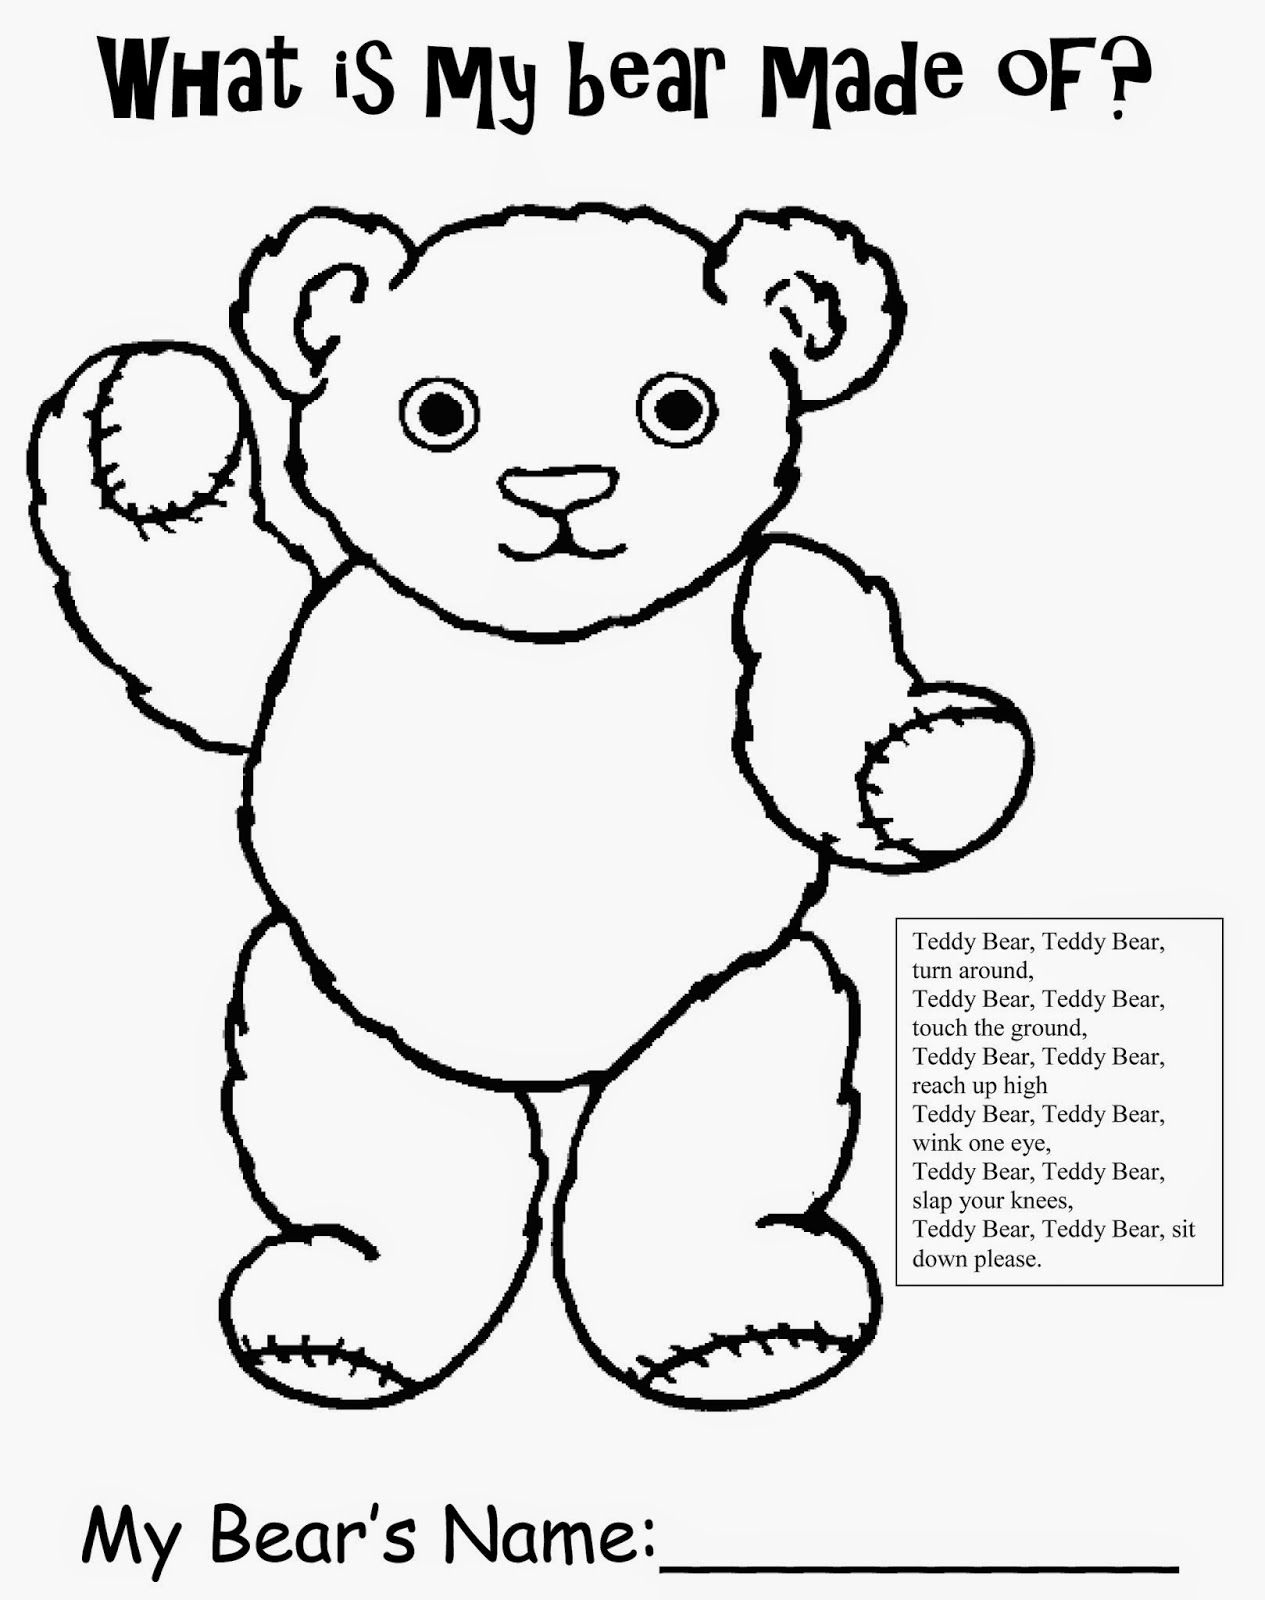 Teddy Bear Free Printable Worksheet For Preschool Kindergarten